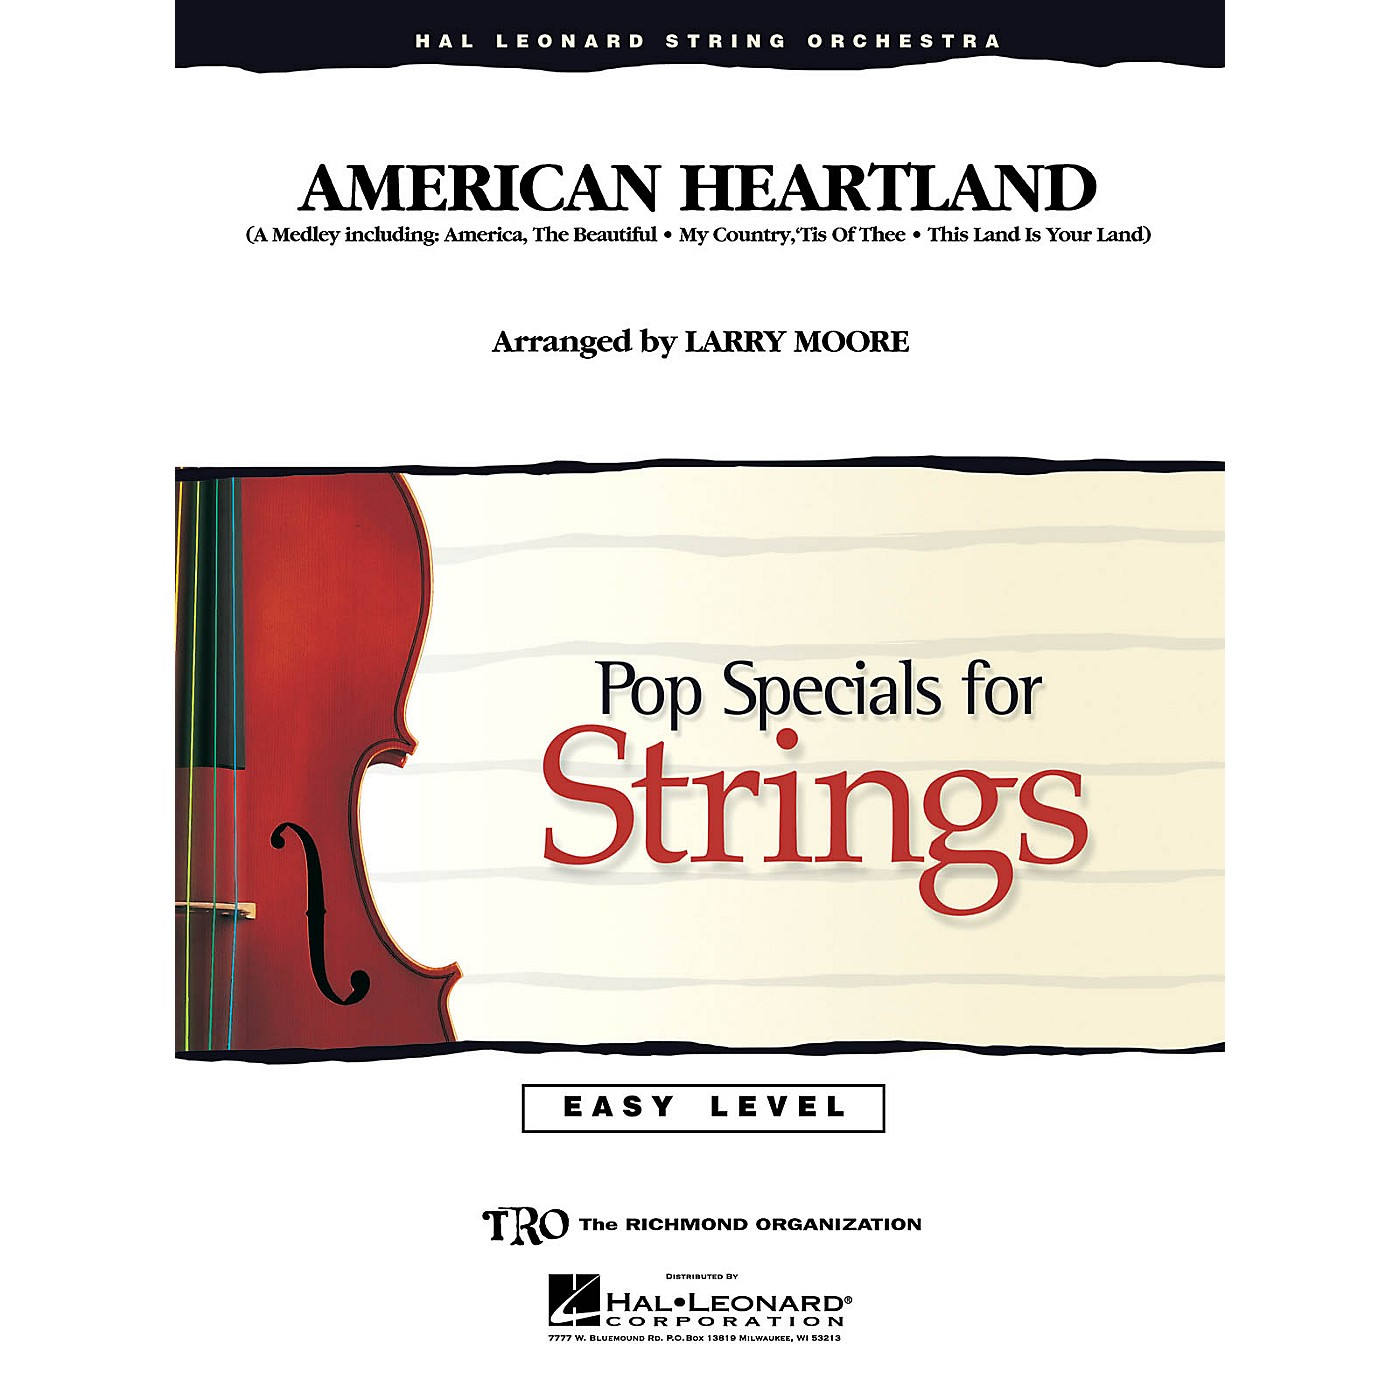 Hal Leonard American Heartland Easy Pop Specials For Strings Series Arranged by Larry Moore thumbnail